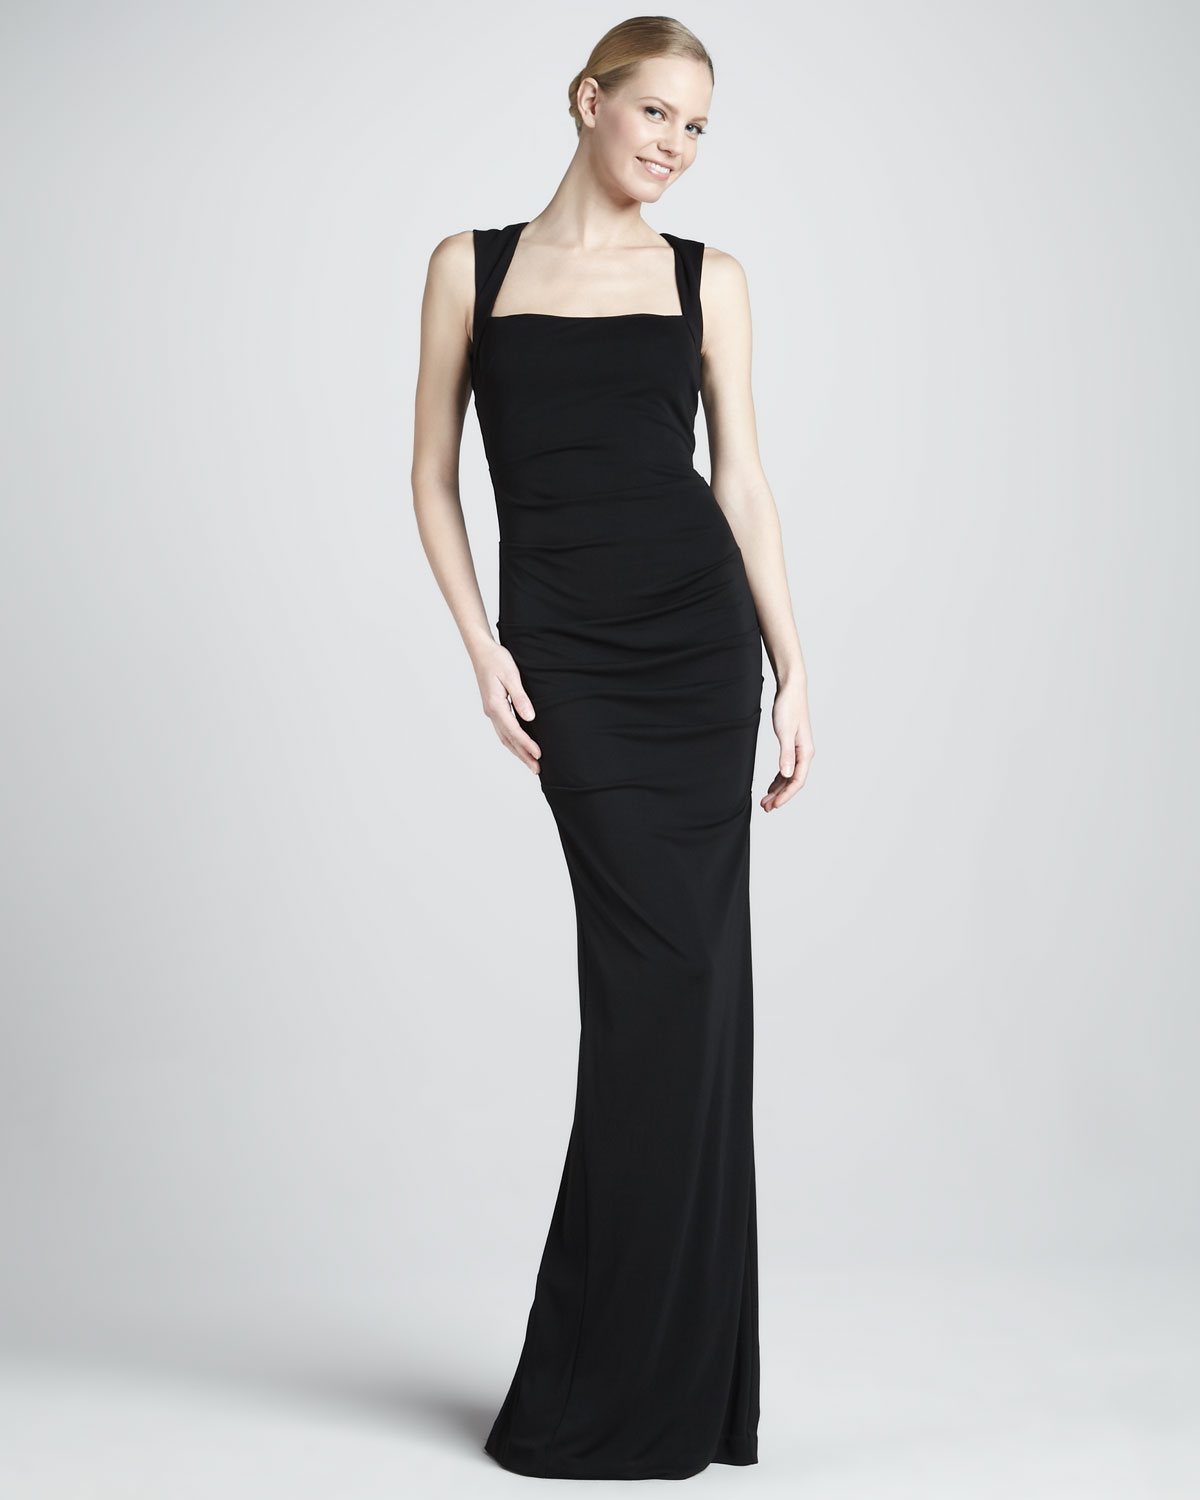 Lyst - Nicole Miller Sleeveless Stretch-Jersey Gown in Black